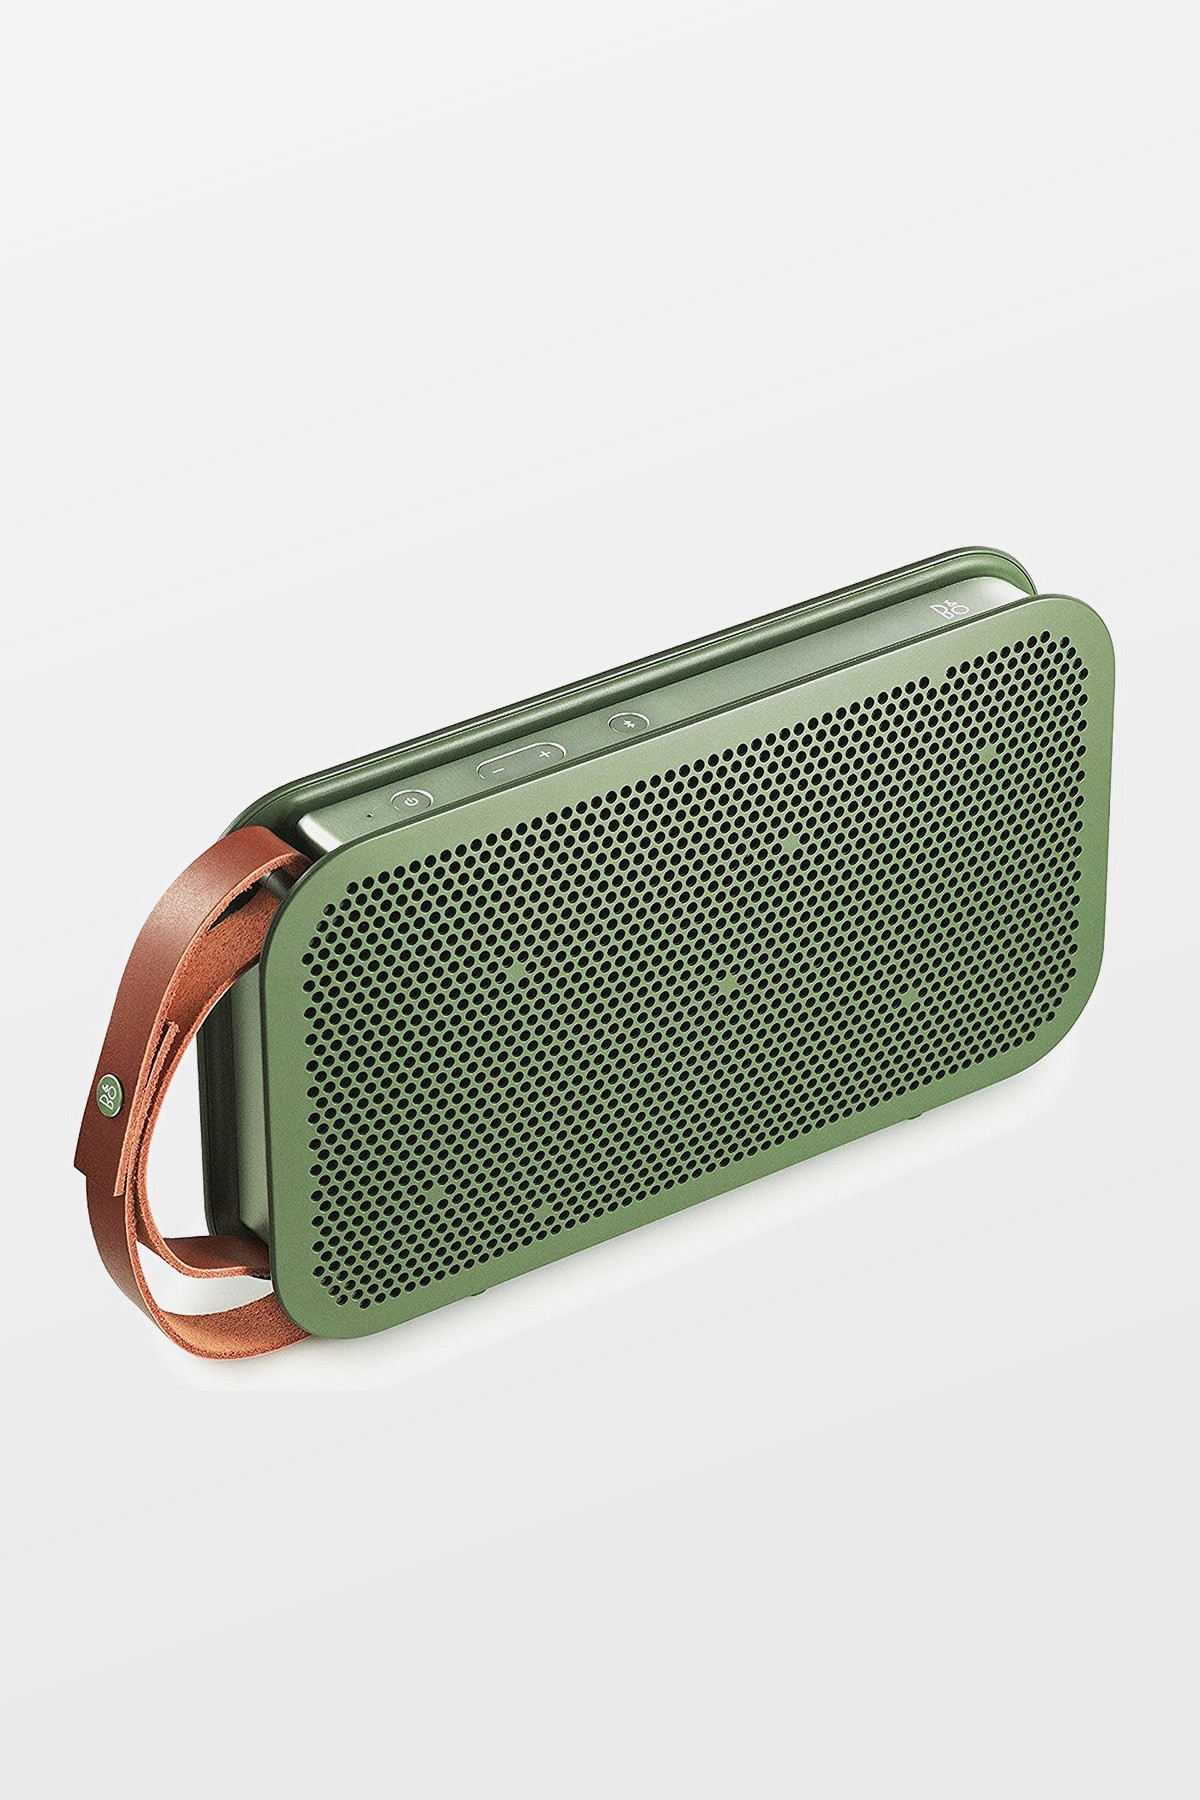 B&O BeoPlay A2 Bluetooth Speaker - Green